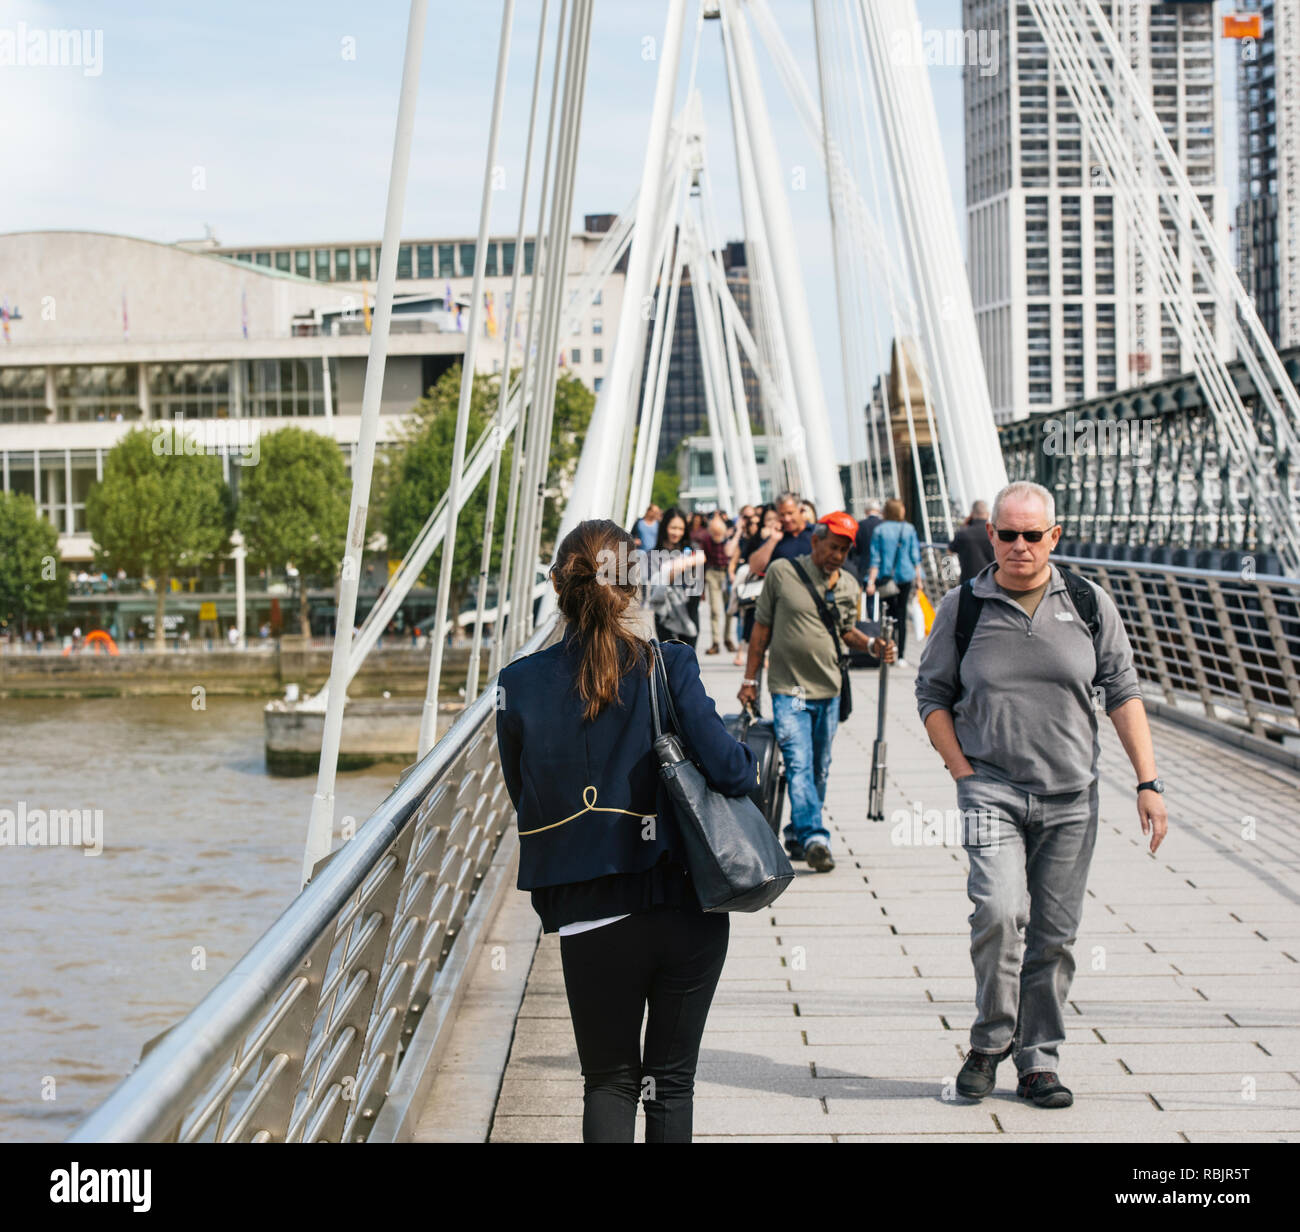 LONDON, UNITED KINGDOM - MAY 18, 2018: Pedestrians walking on a warm sunny day on the Hungerford Bridge in London - Stock Image